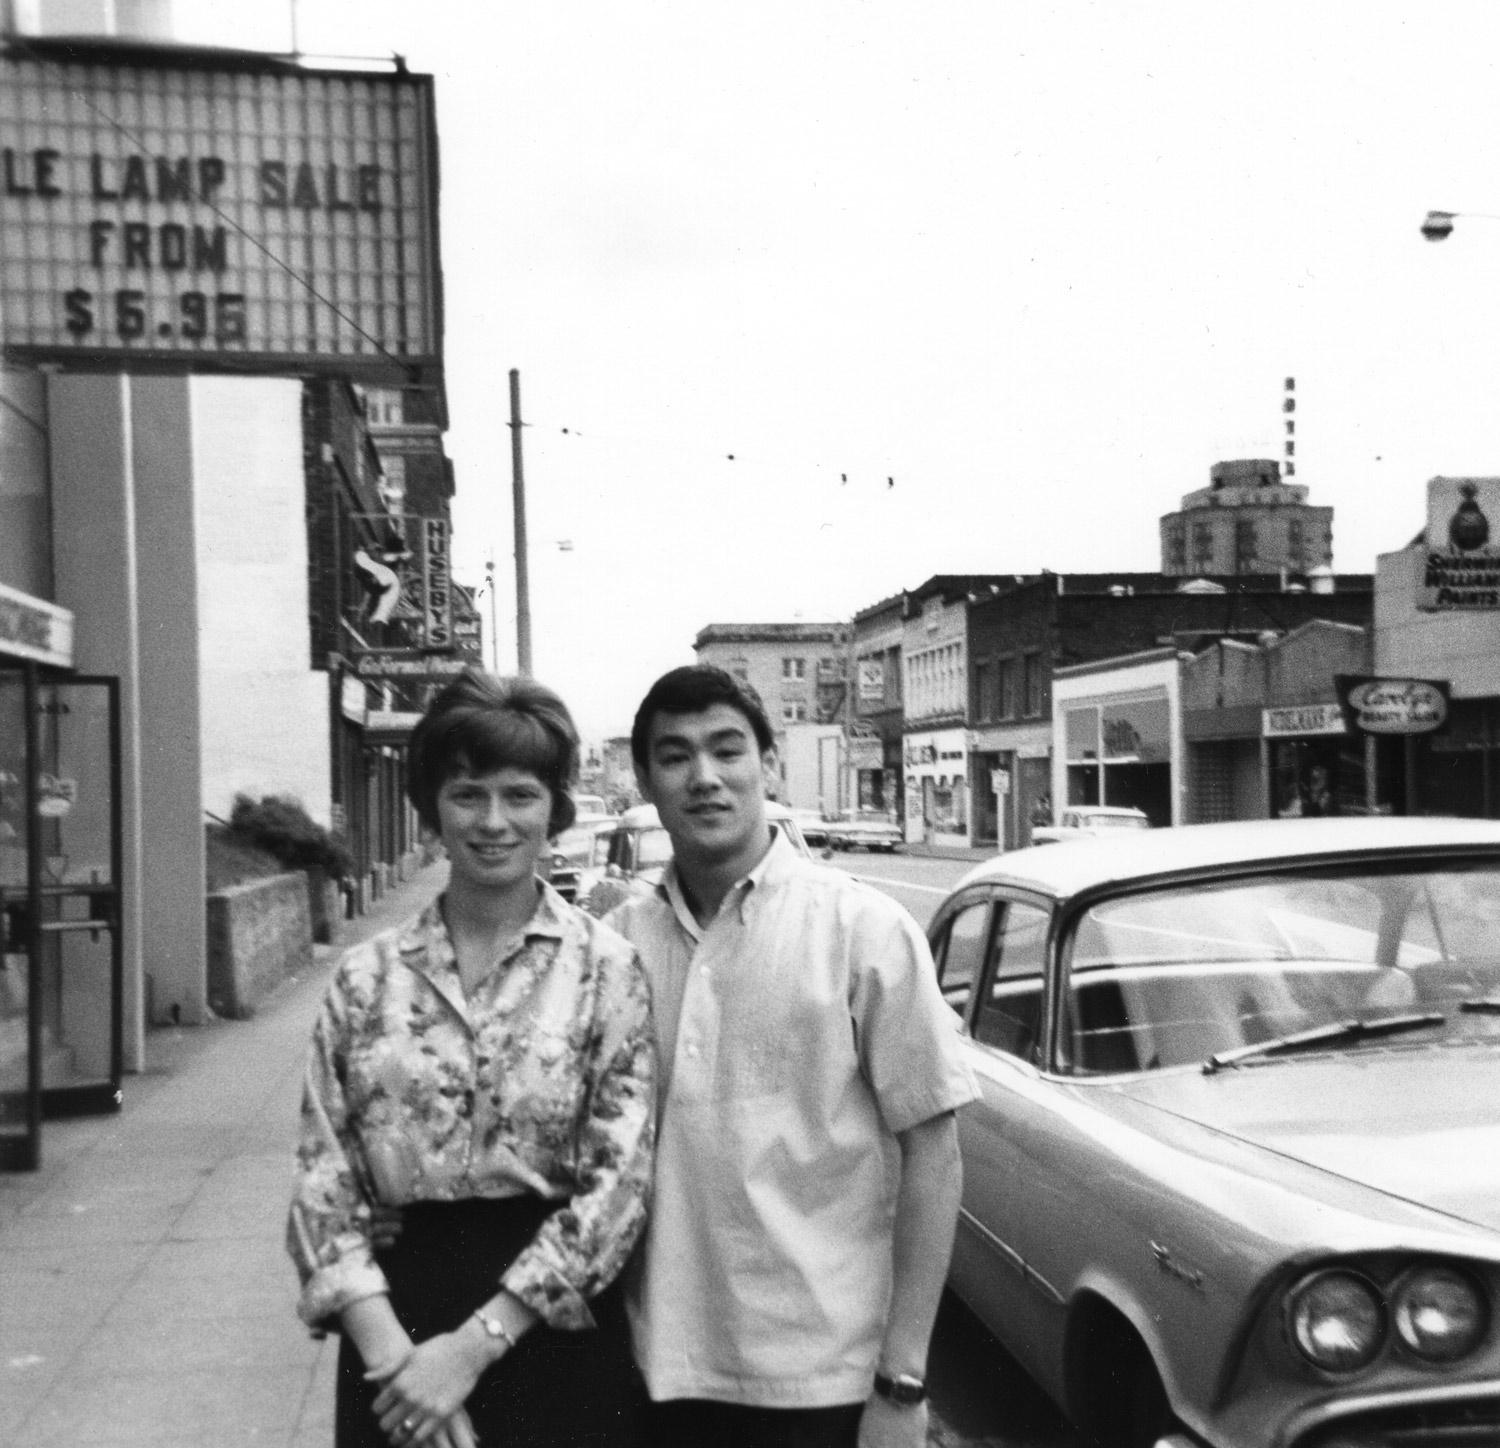 When Bruce Lee was an unknown, everyday guy | KUOW News ...